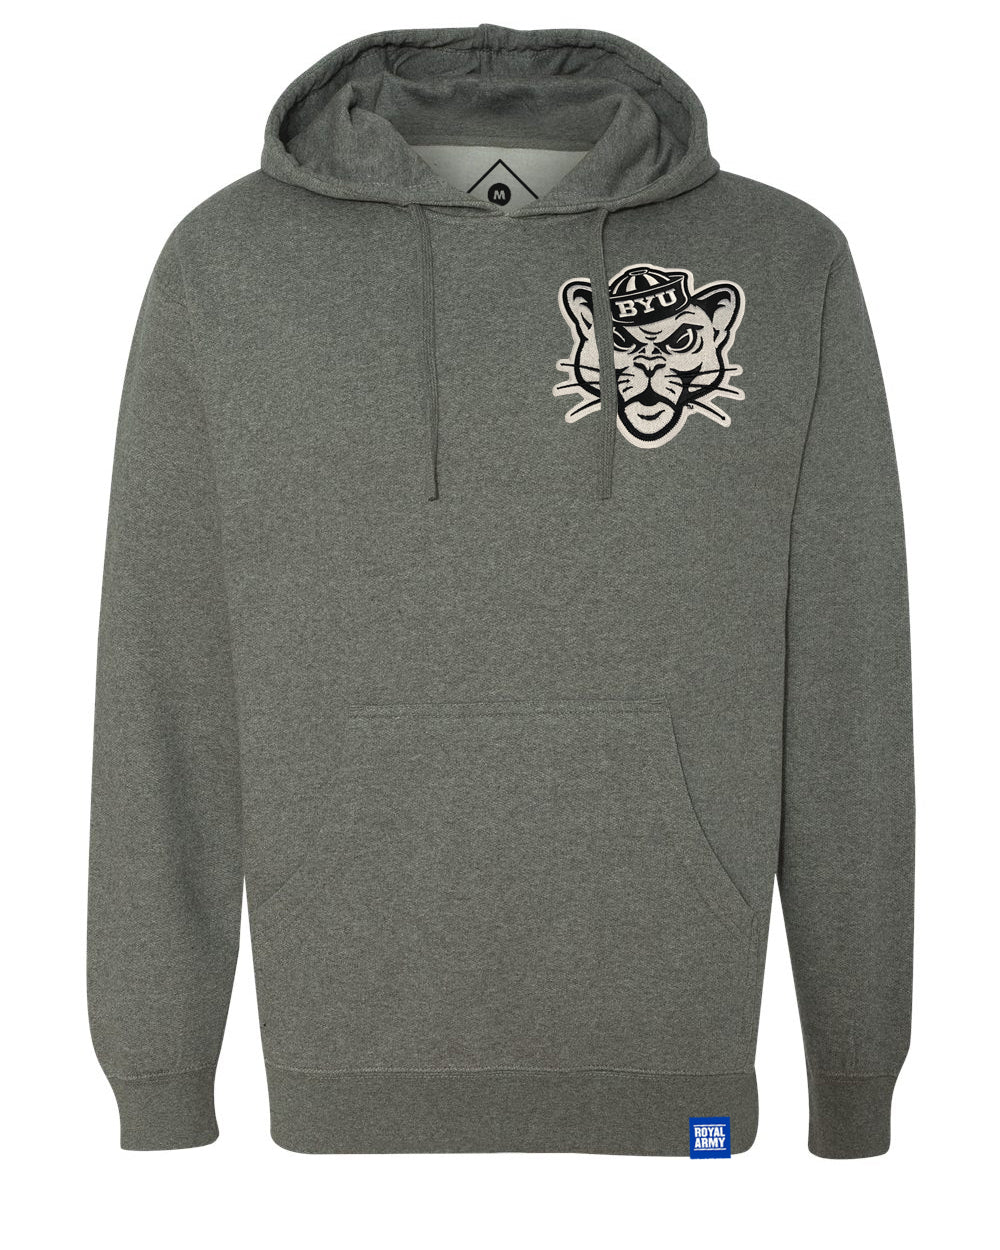 Gun Metal Grey Fleece Hoodie with Tackle Twill BYU Sailor Cougar Patch